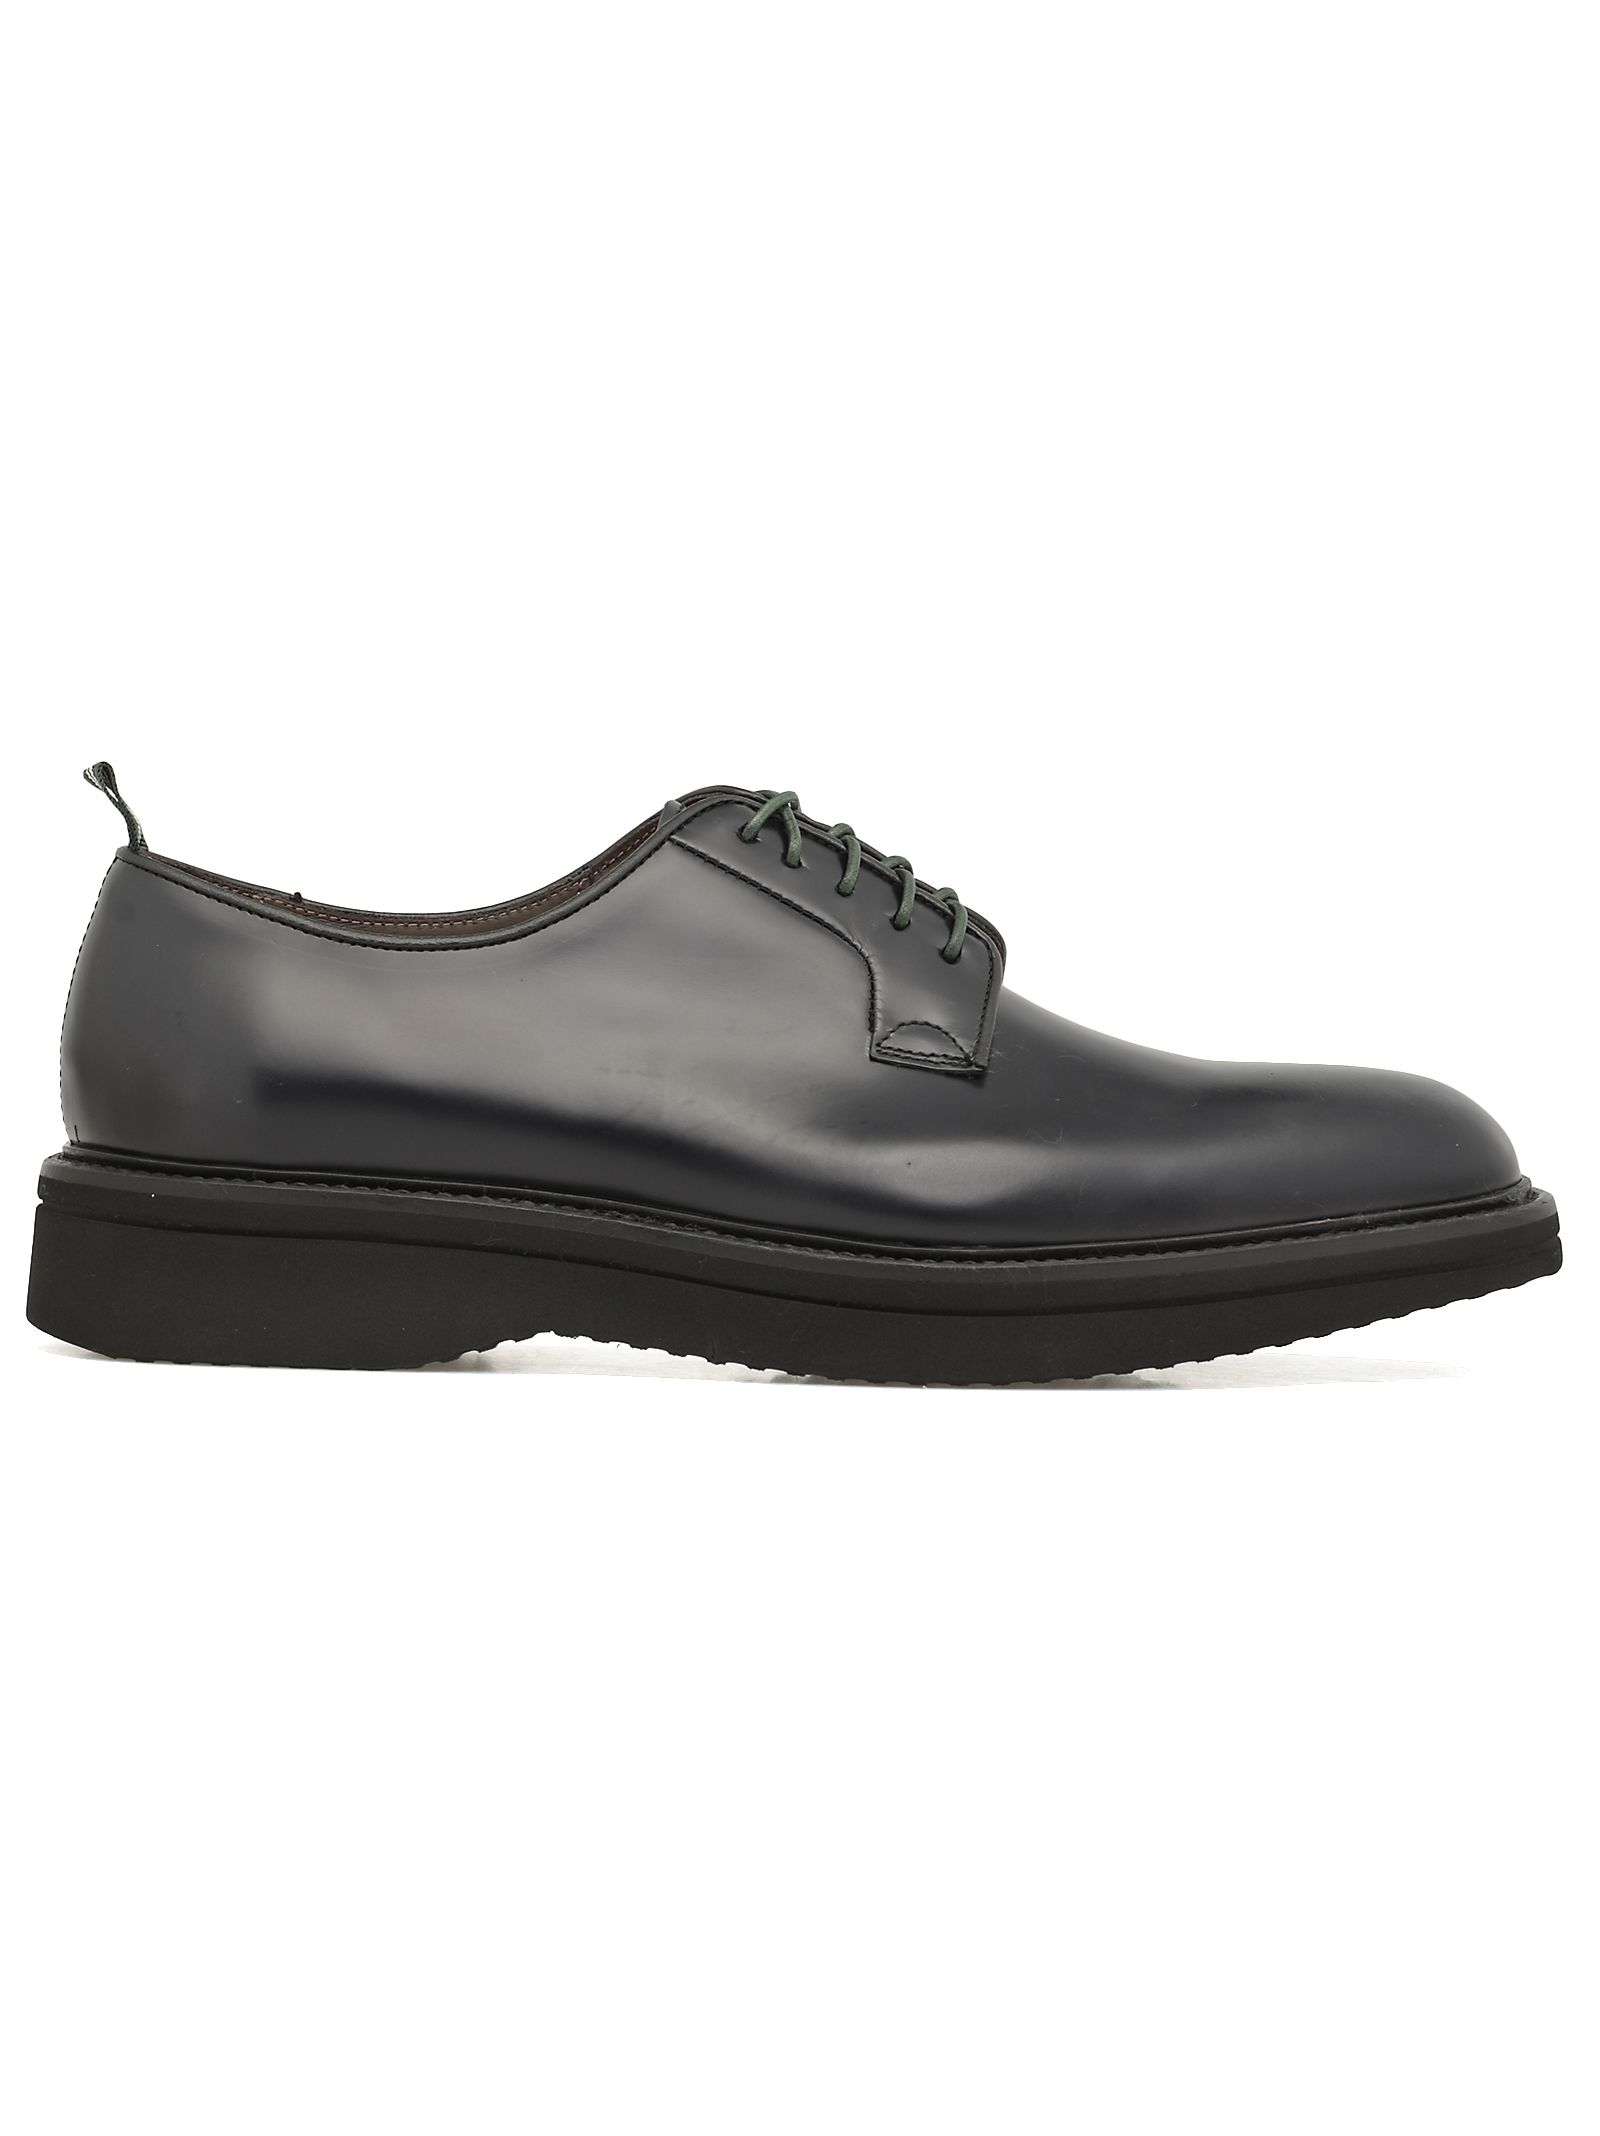 Green George Lace-up Leather Shoe